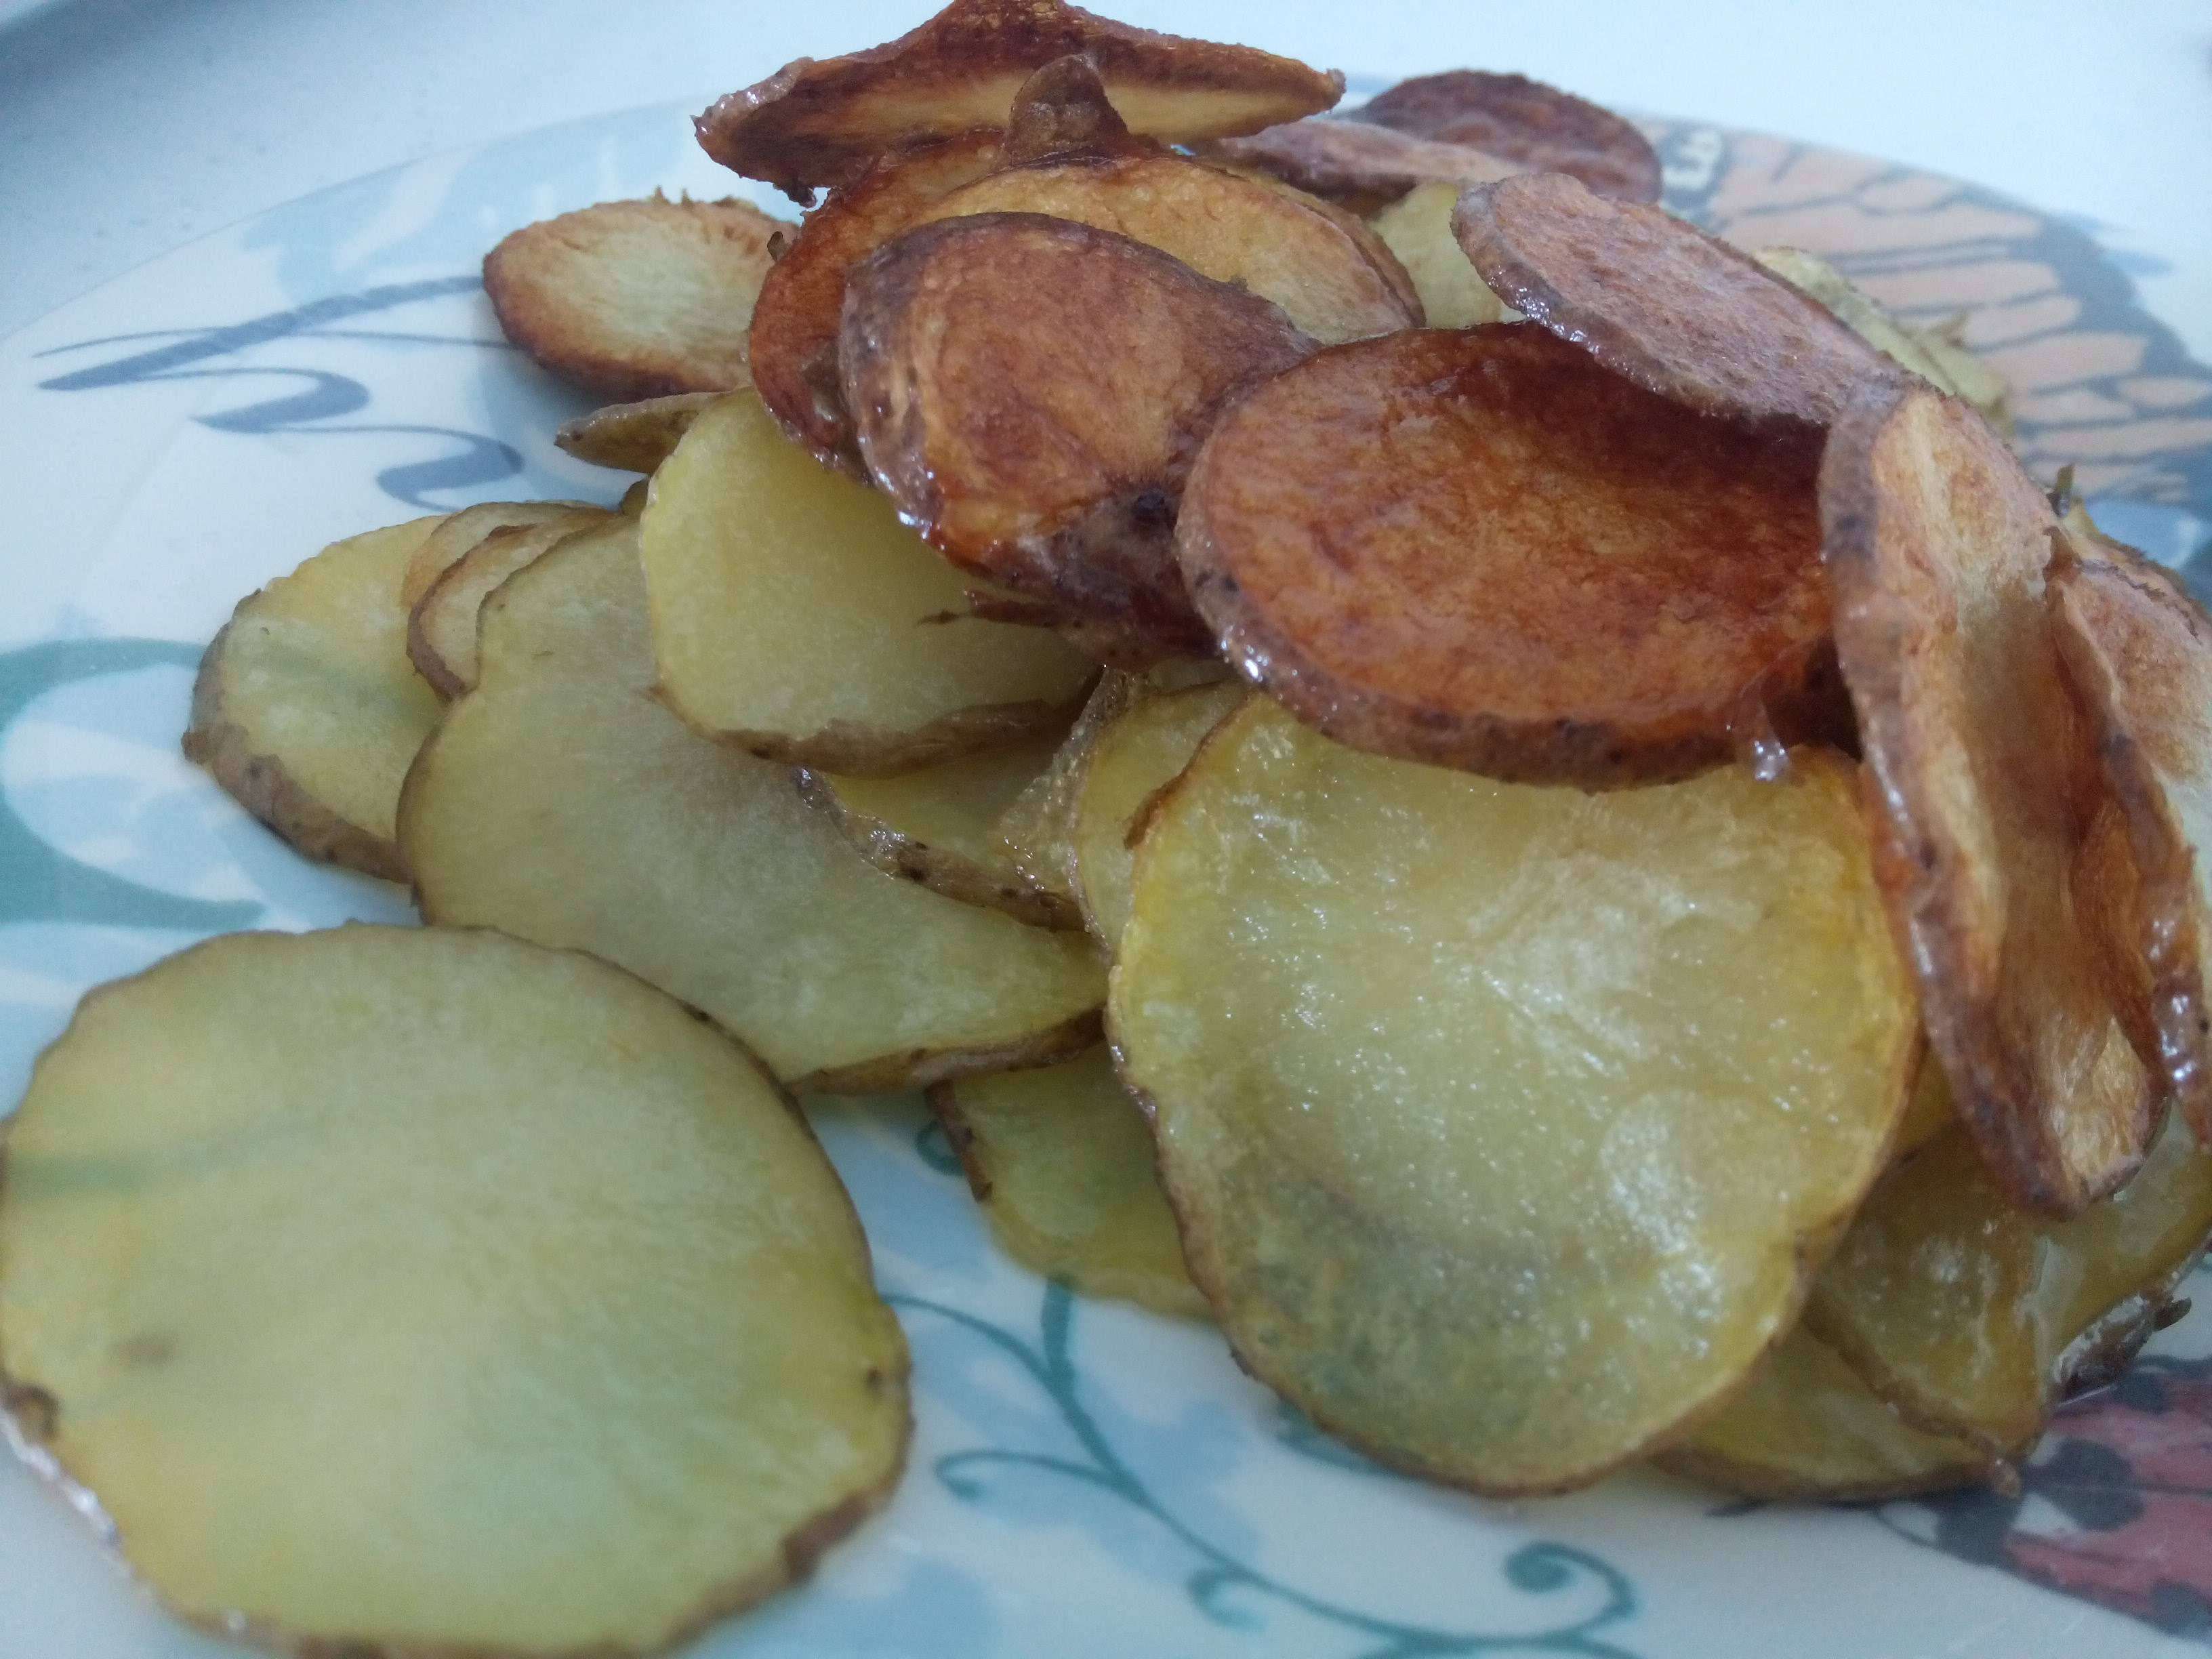 Fried sliced potato on a plate